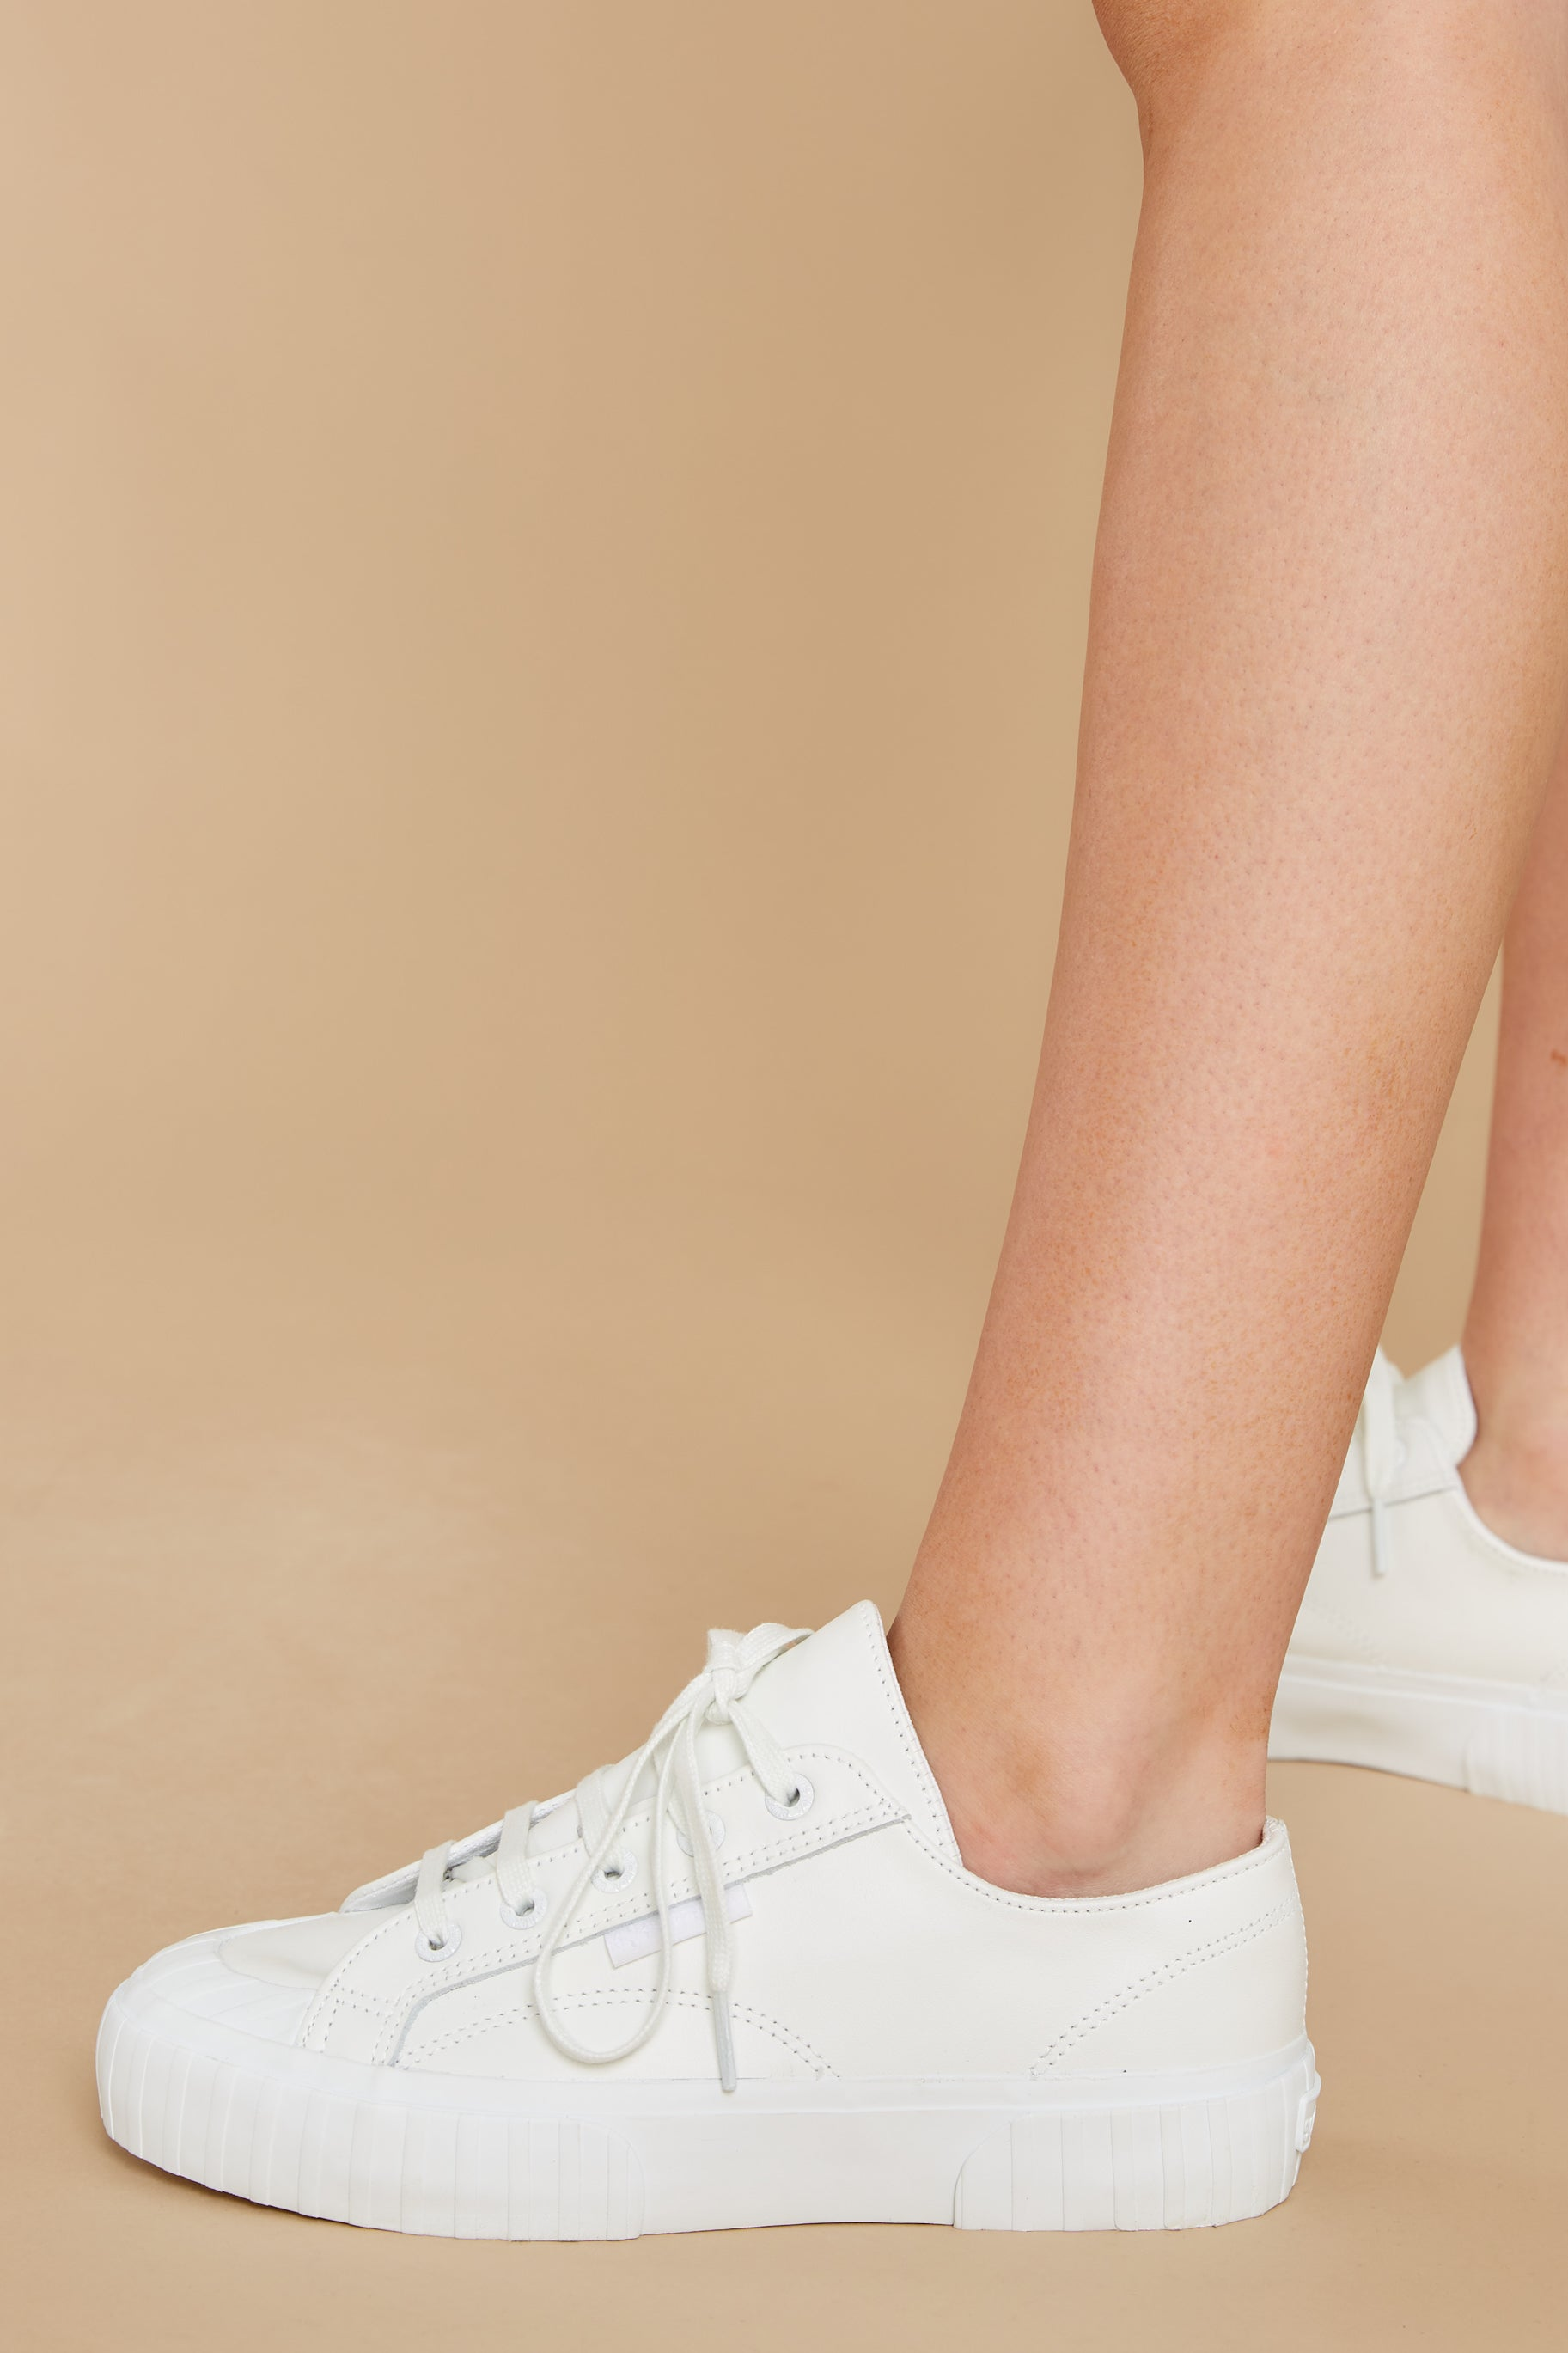 2 Superga 2630 Cownappau Total White Sneakers at reddress.com